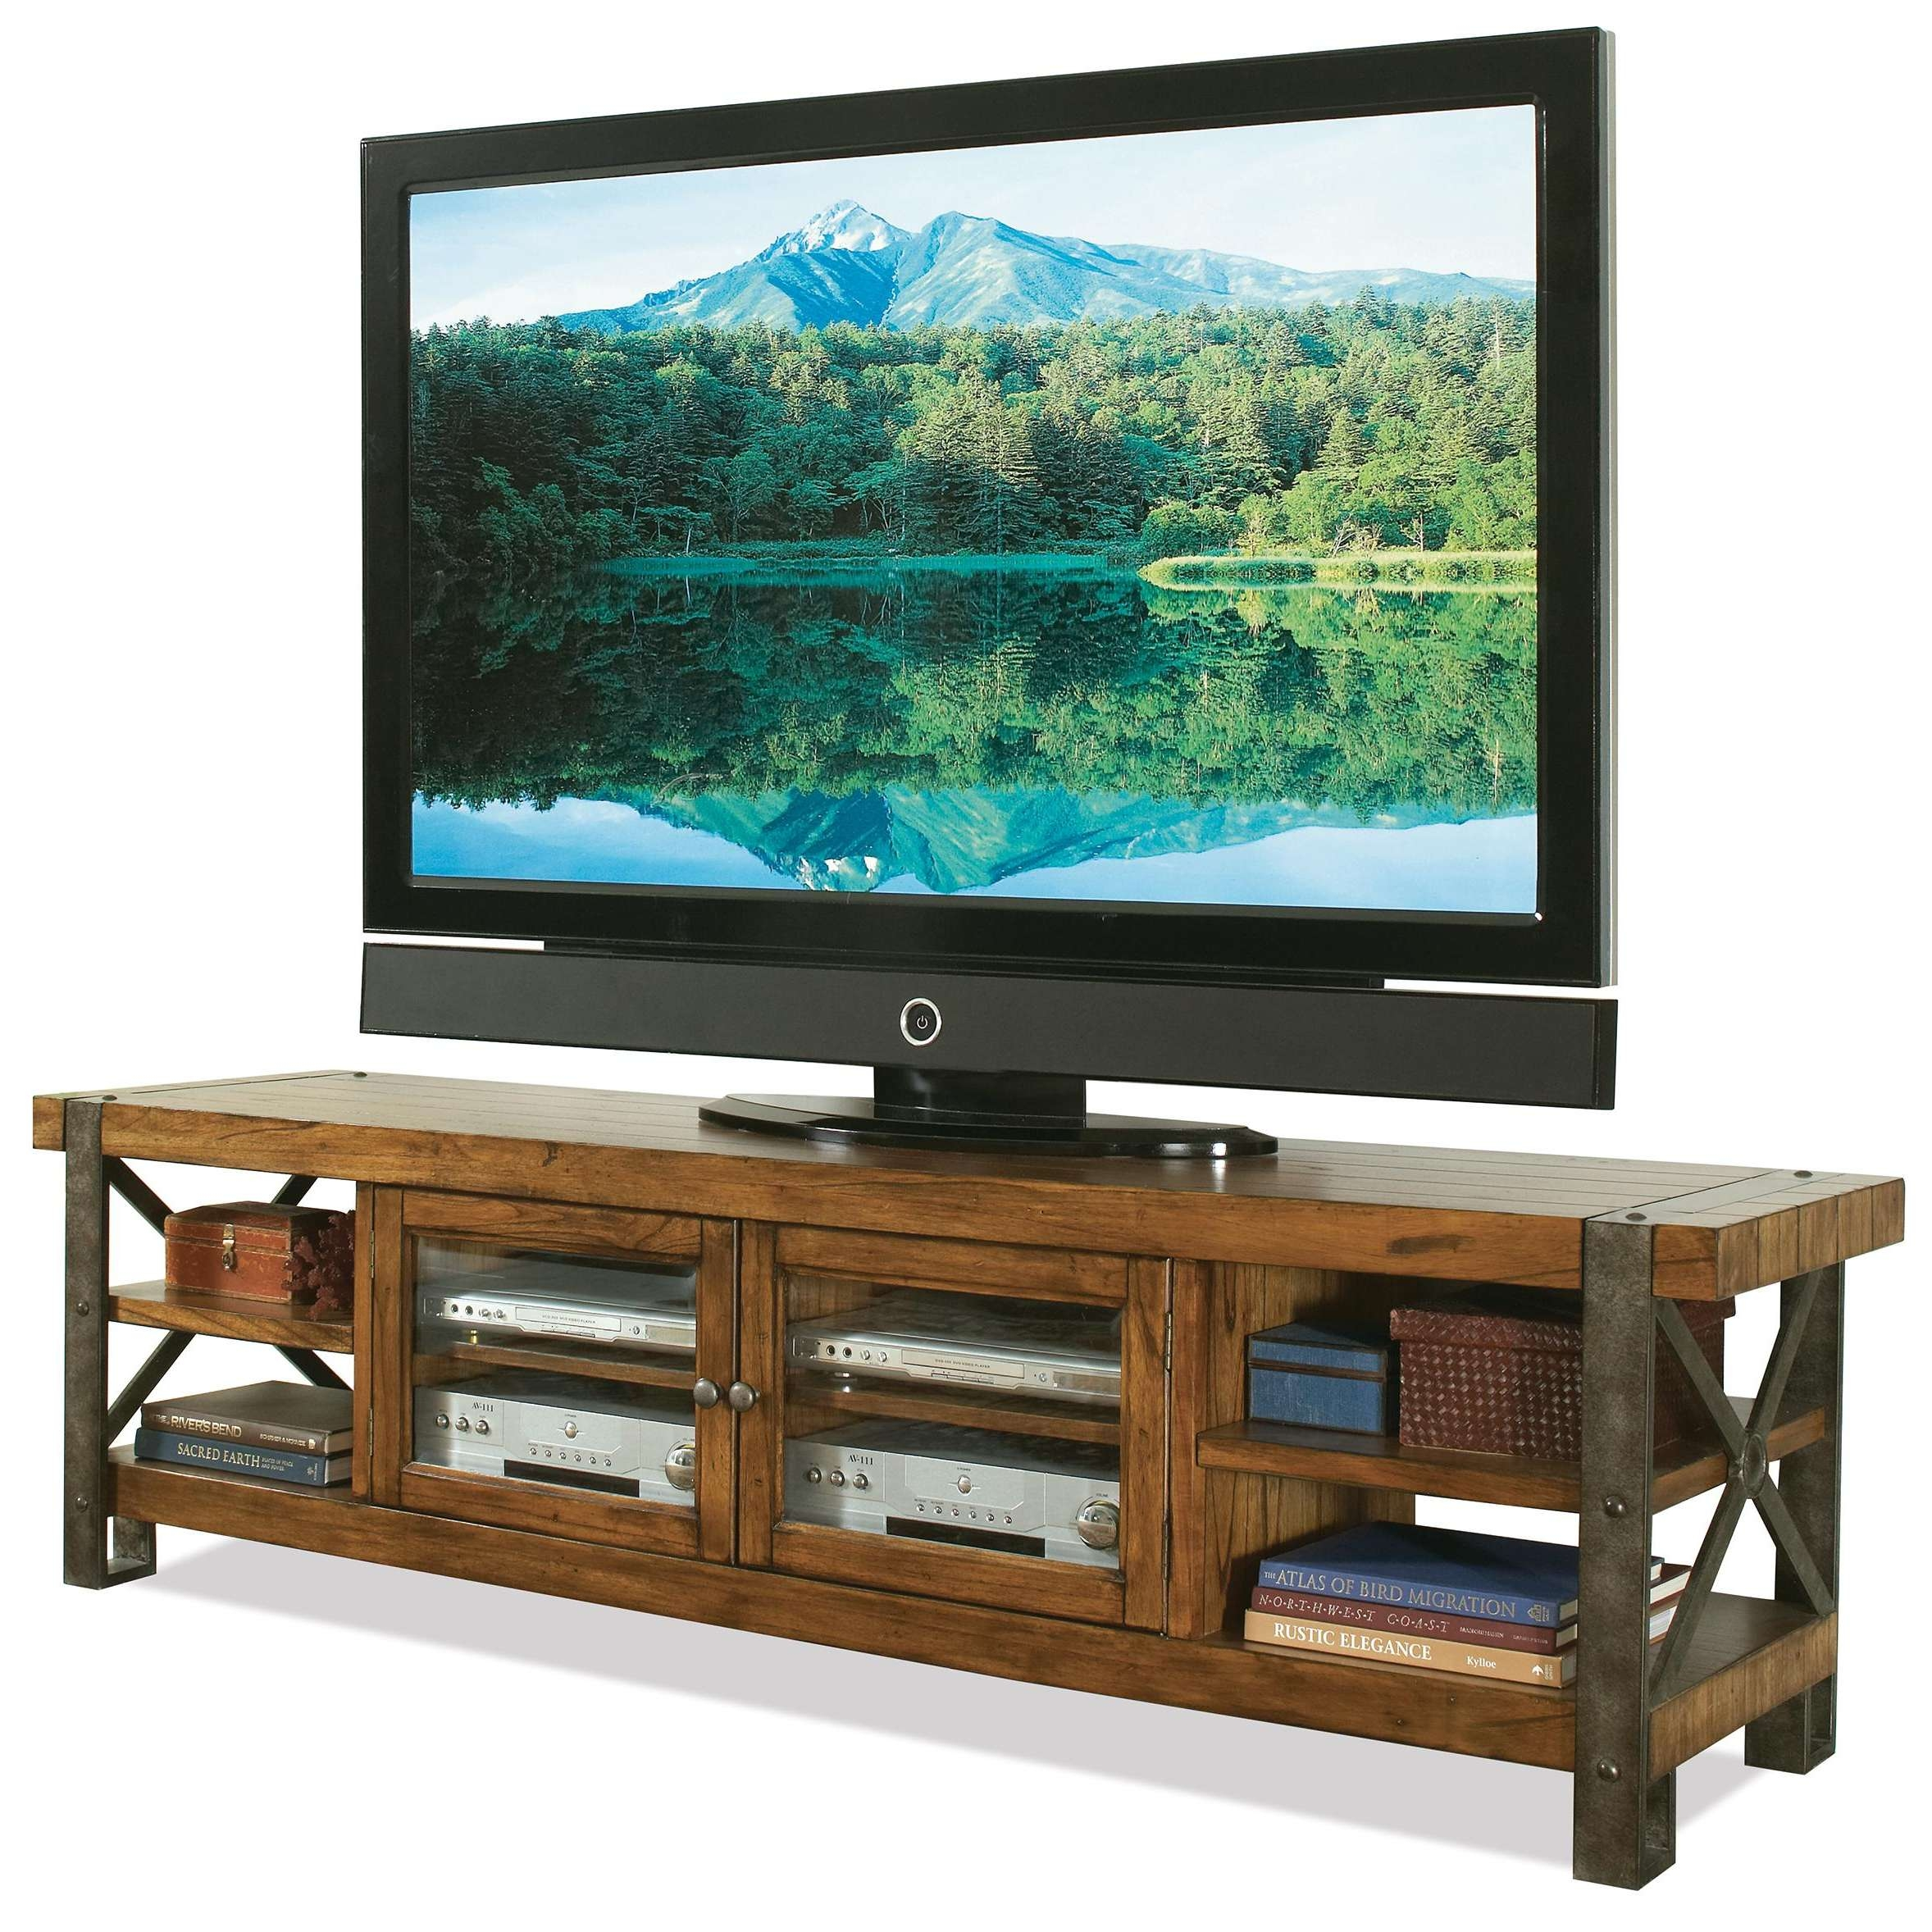 Rustic Tv Stand Console Table With Bookshelf And Storage With With Regard To Wooden Tv Cabinets With Glass Doors (View 15 of 20)